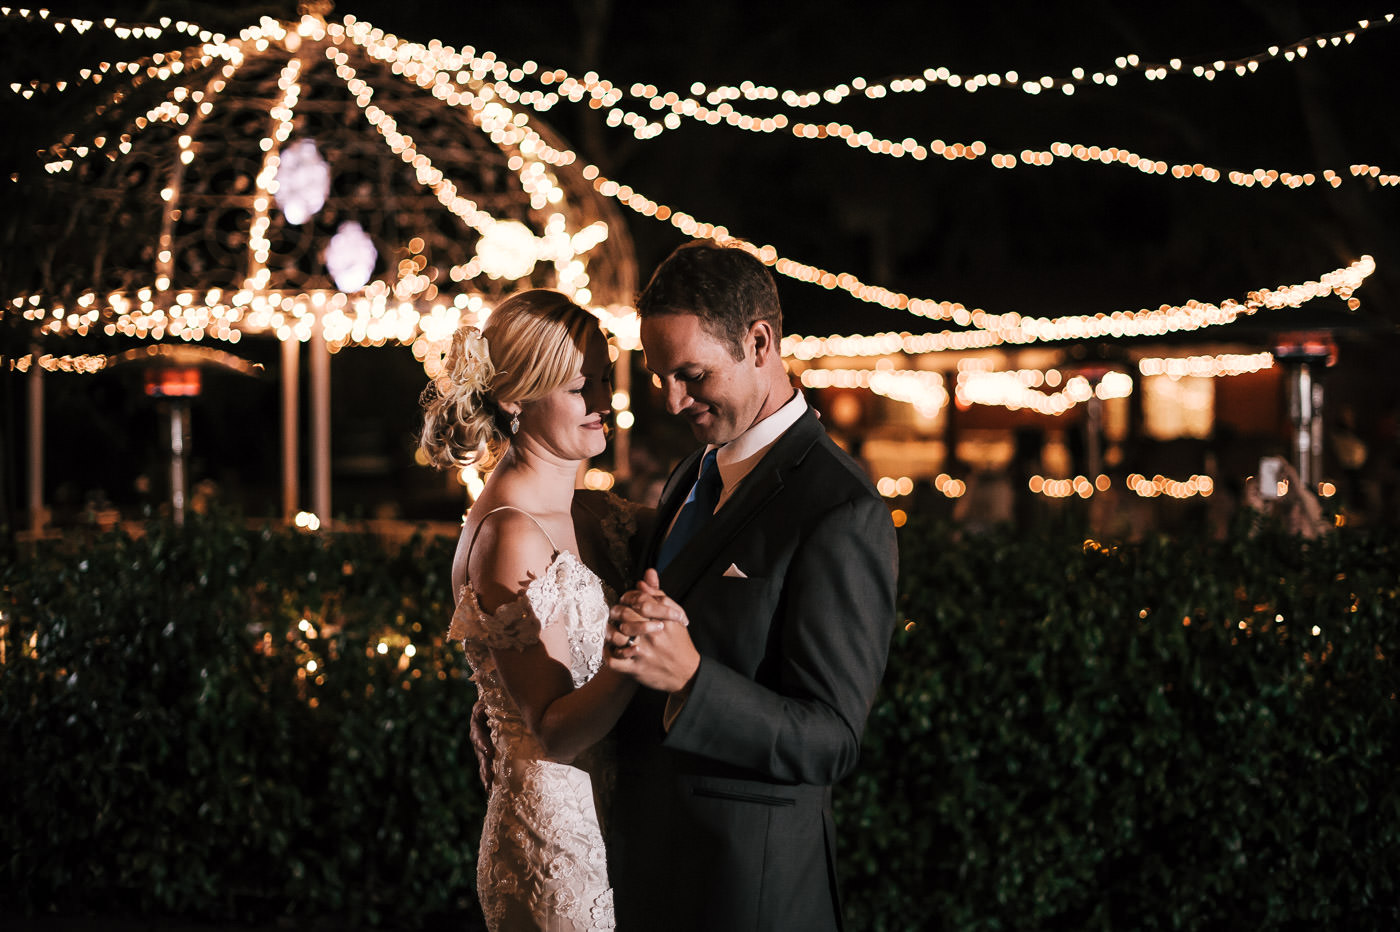 newly wed couple has their first dance under the twinkling lights of the beautiful wedding venue in temecula california